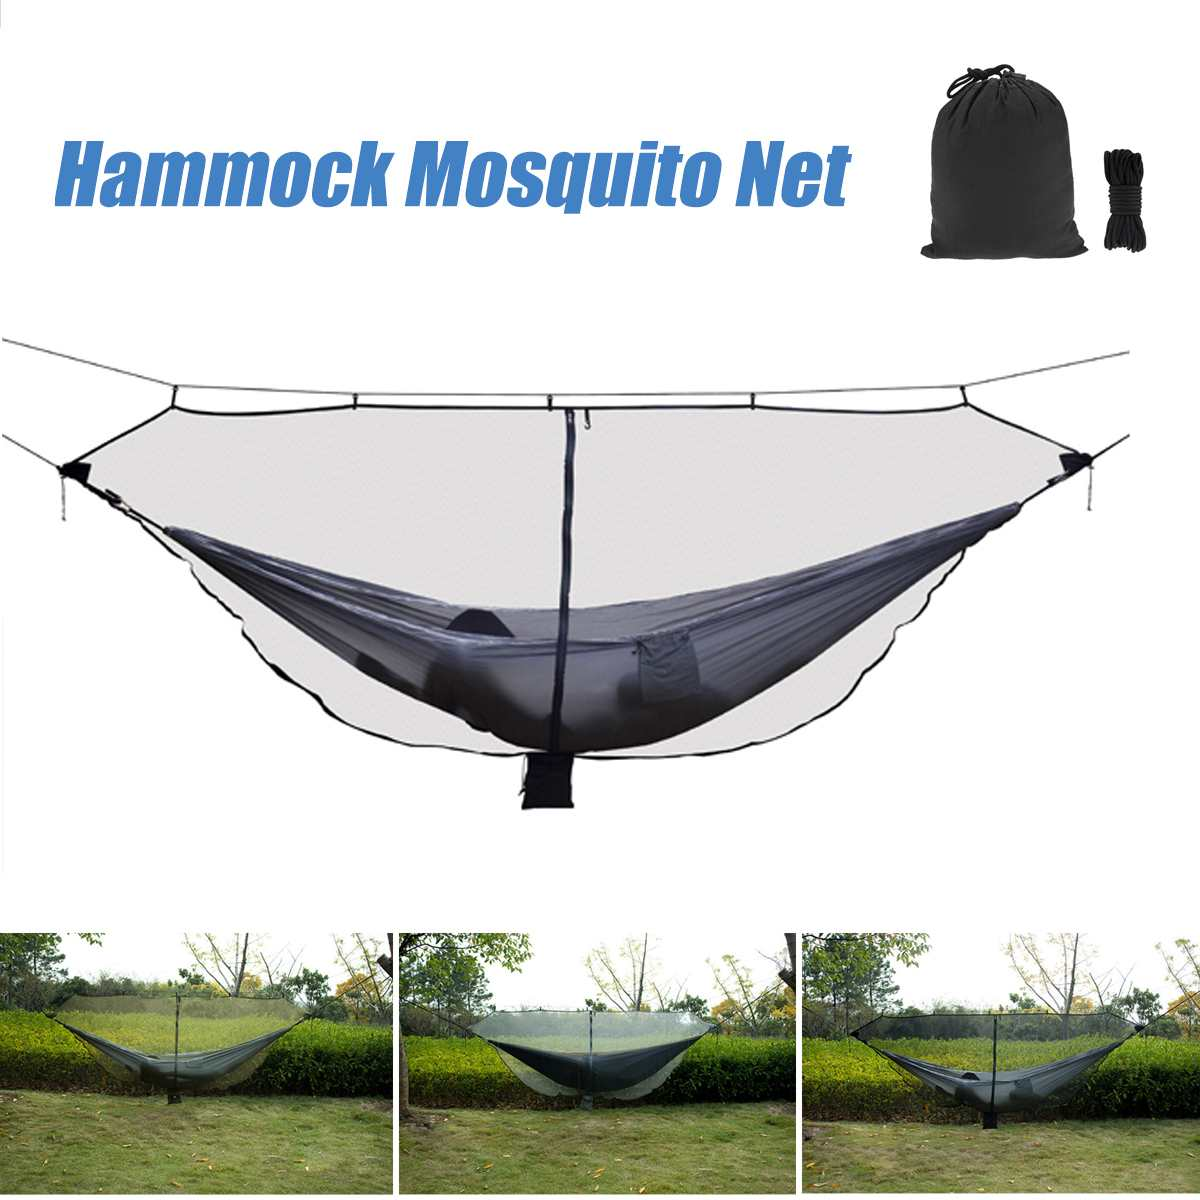 Separate Hammock Mosquito Nets Outdoor Yard Travel 1 2